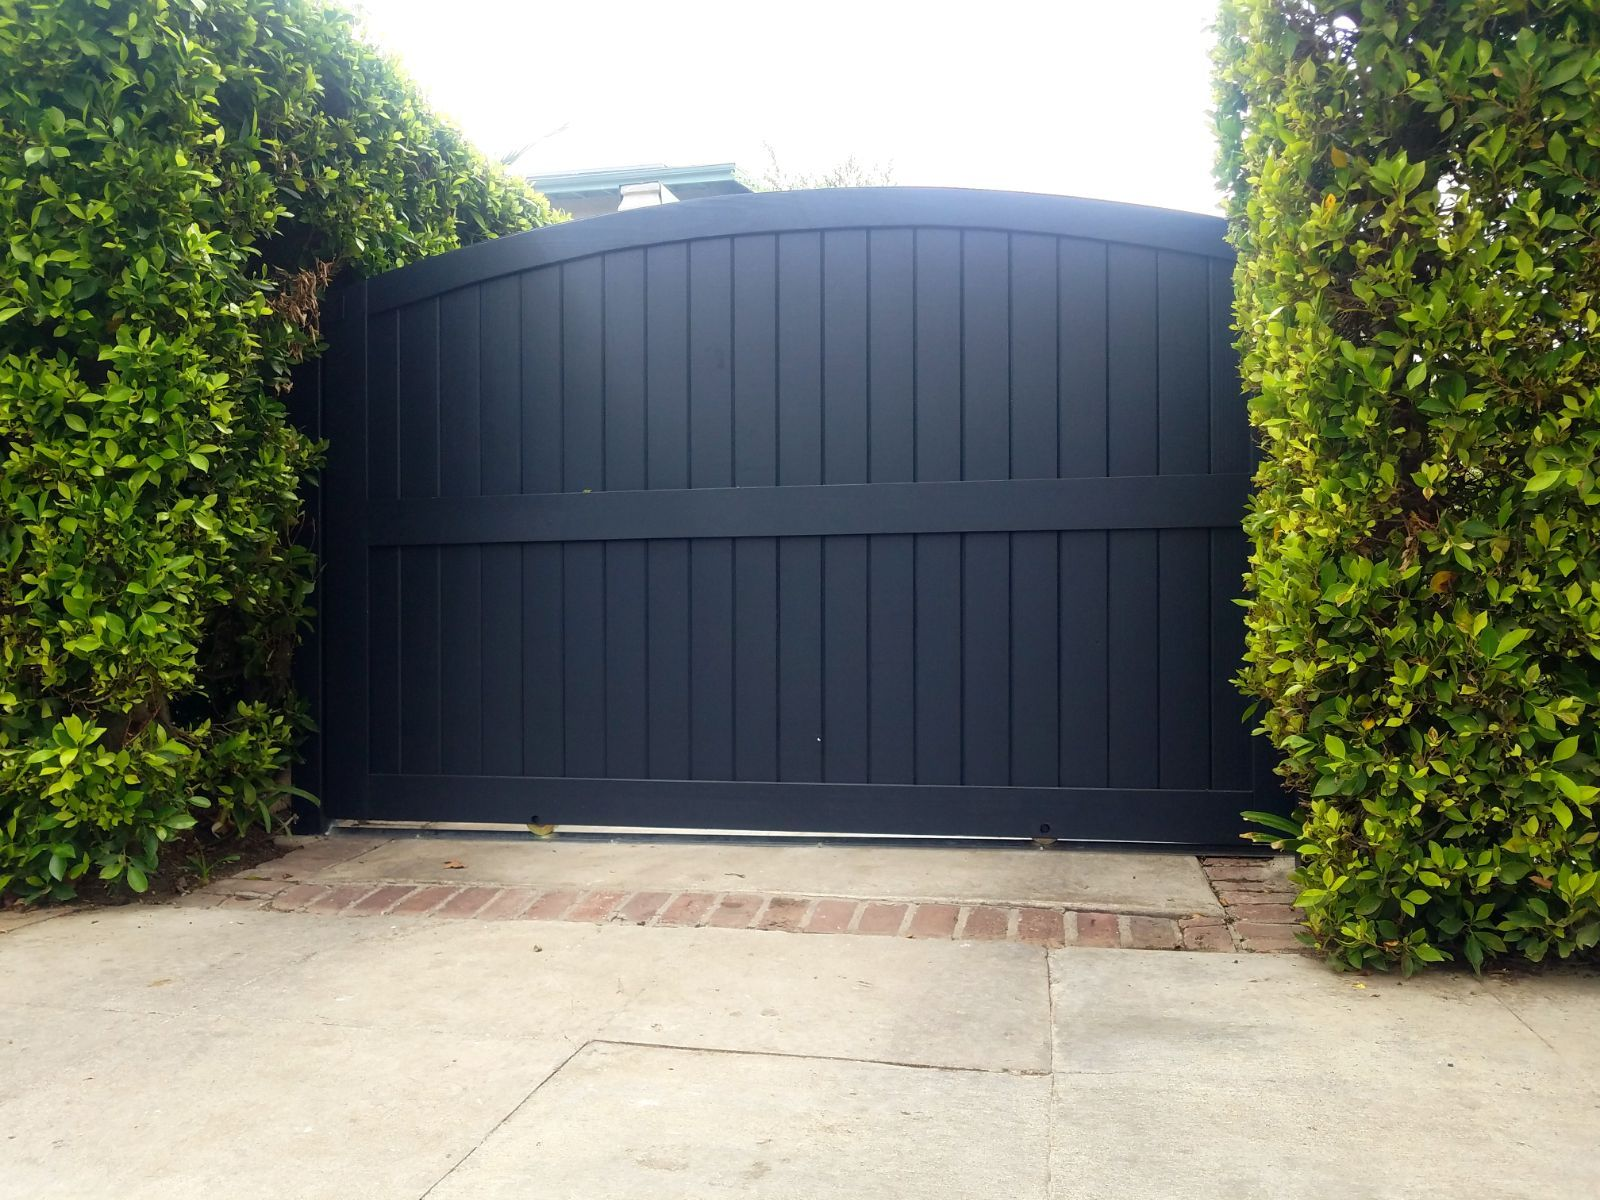 Arched Top Automatic Slide Entry Driveway Security Gates In Black Perfect Garage Doors Gates In In 2020 Driveway Security Gates House Gate Design Security Gates